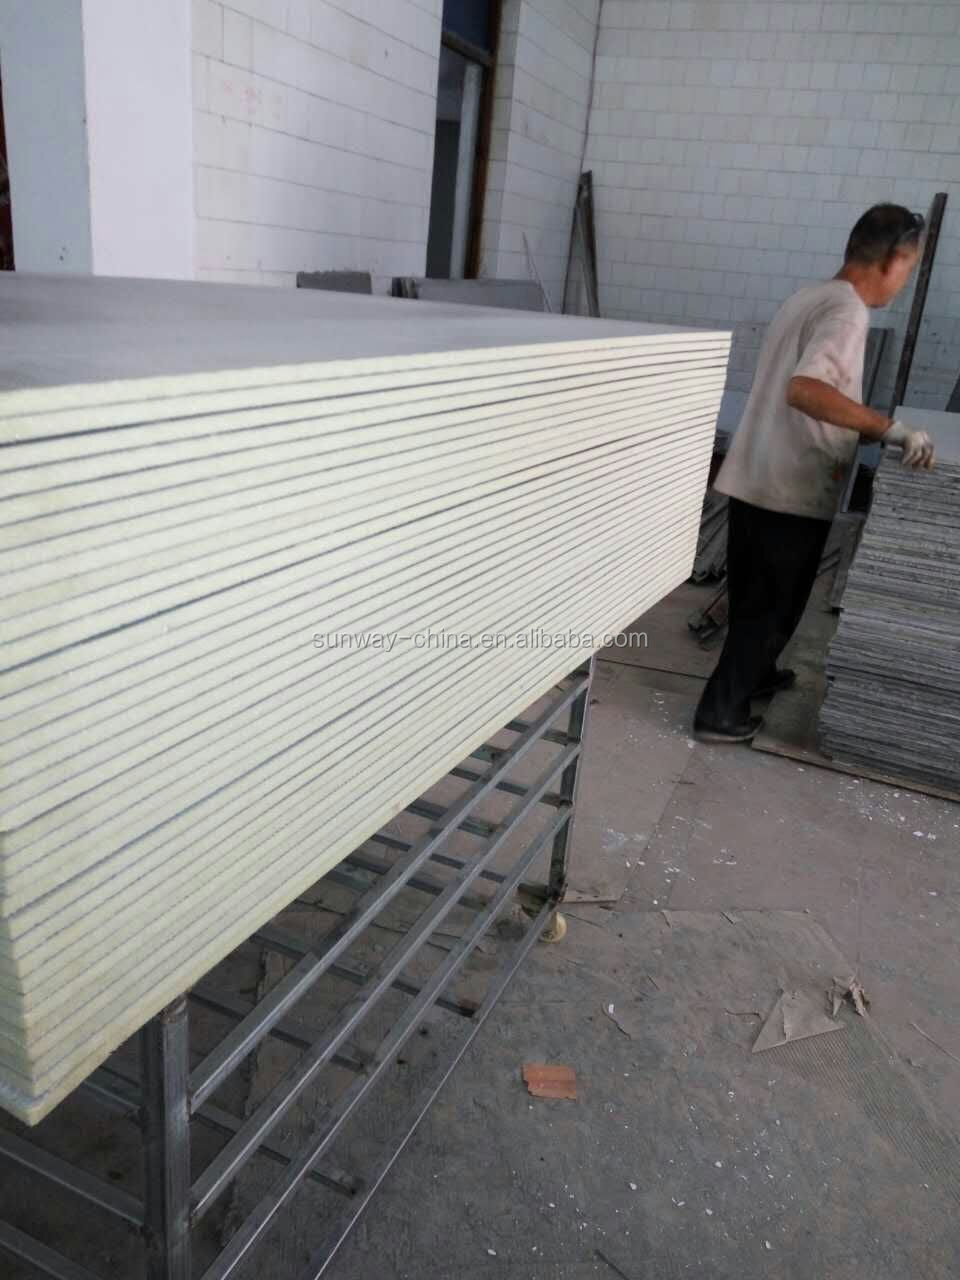 Tile backer board customized thickness reinforced with glassfibre mesh4*6 for USA